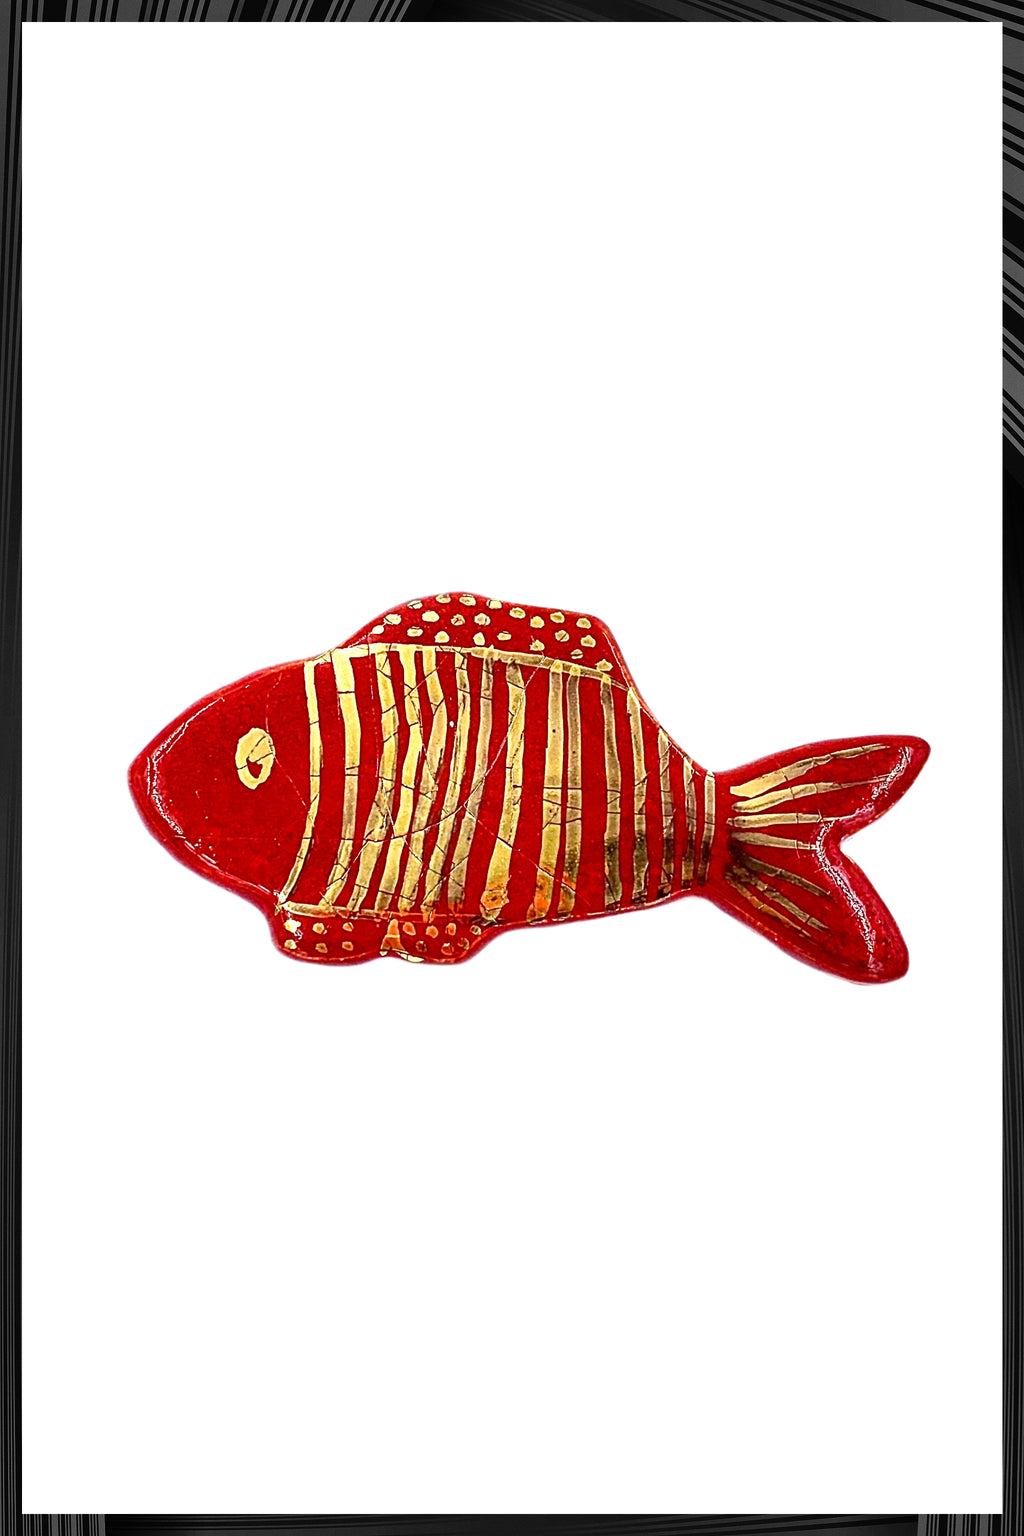 Red Snapper Fish Pin